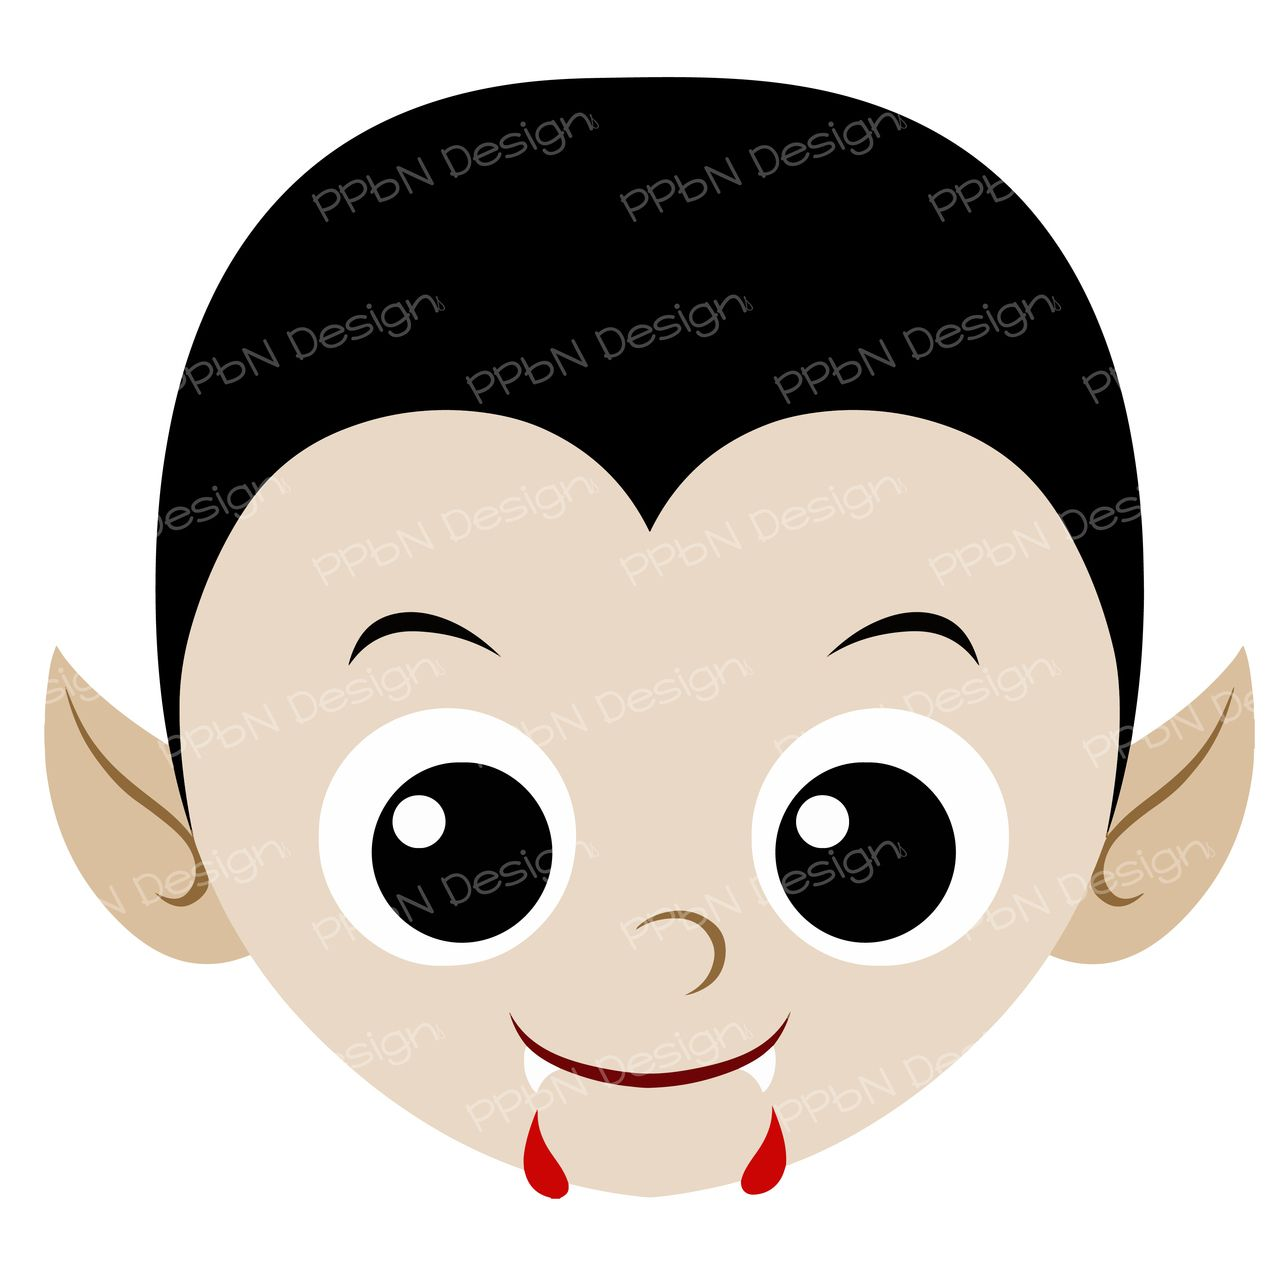 PPbN Designs - Vampire Face (SVG Only), $0.00 (http://www.ppbndesigns.com/products/vampire-face-svg-only.html)